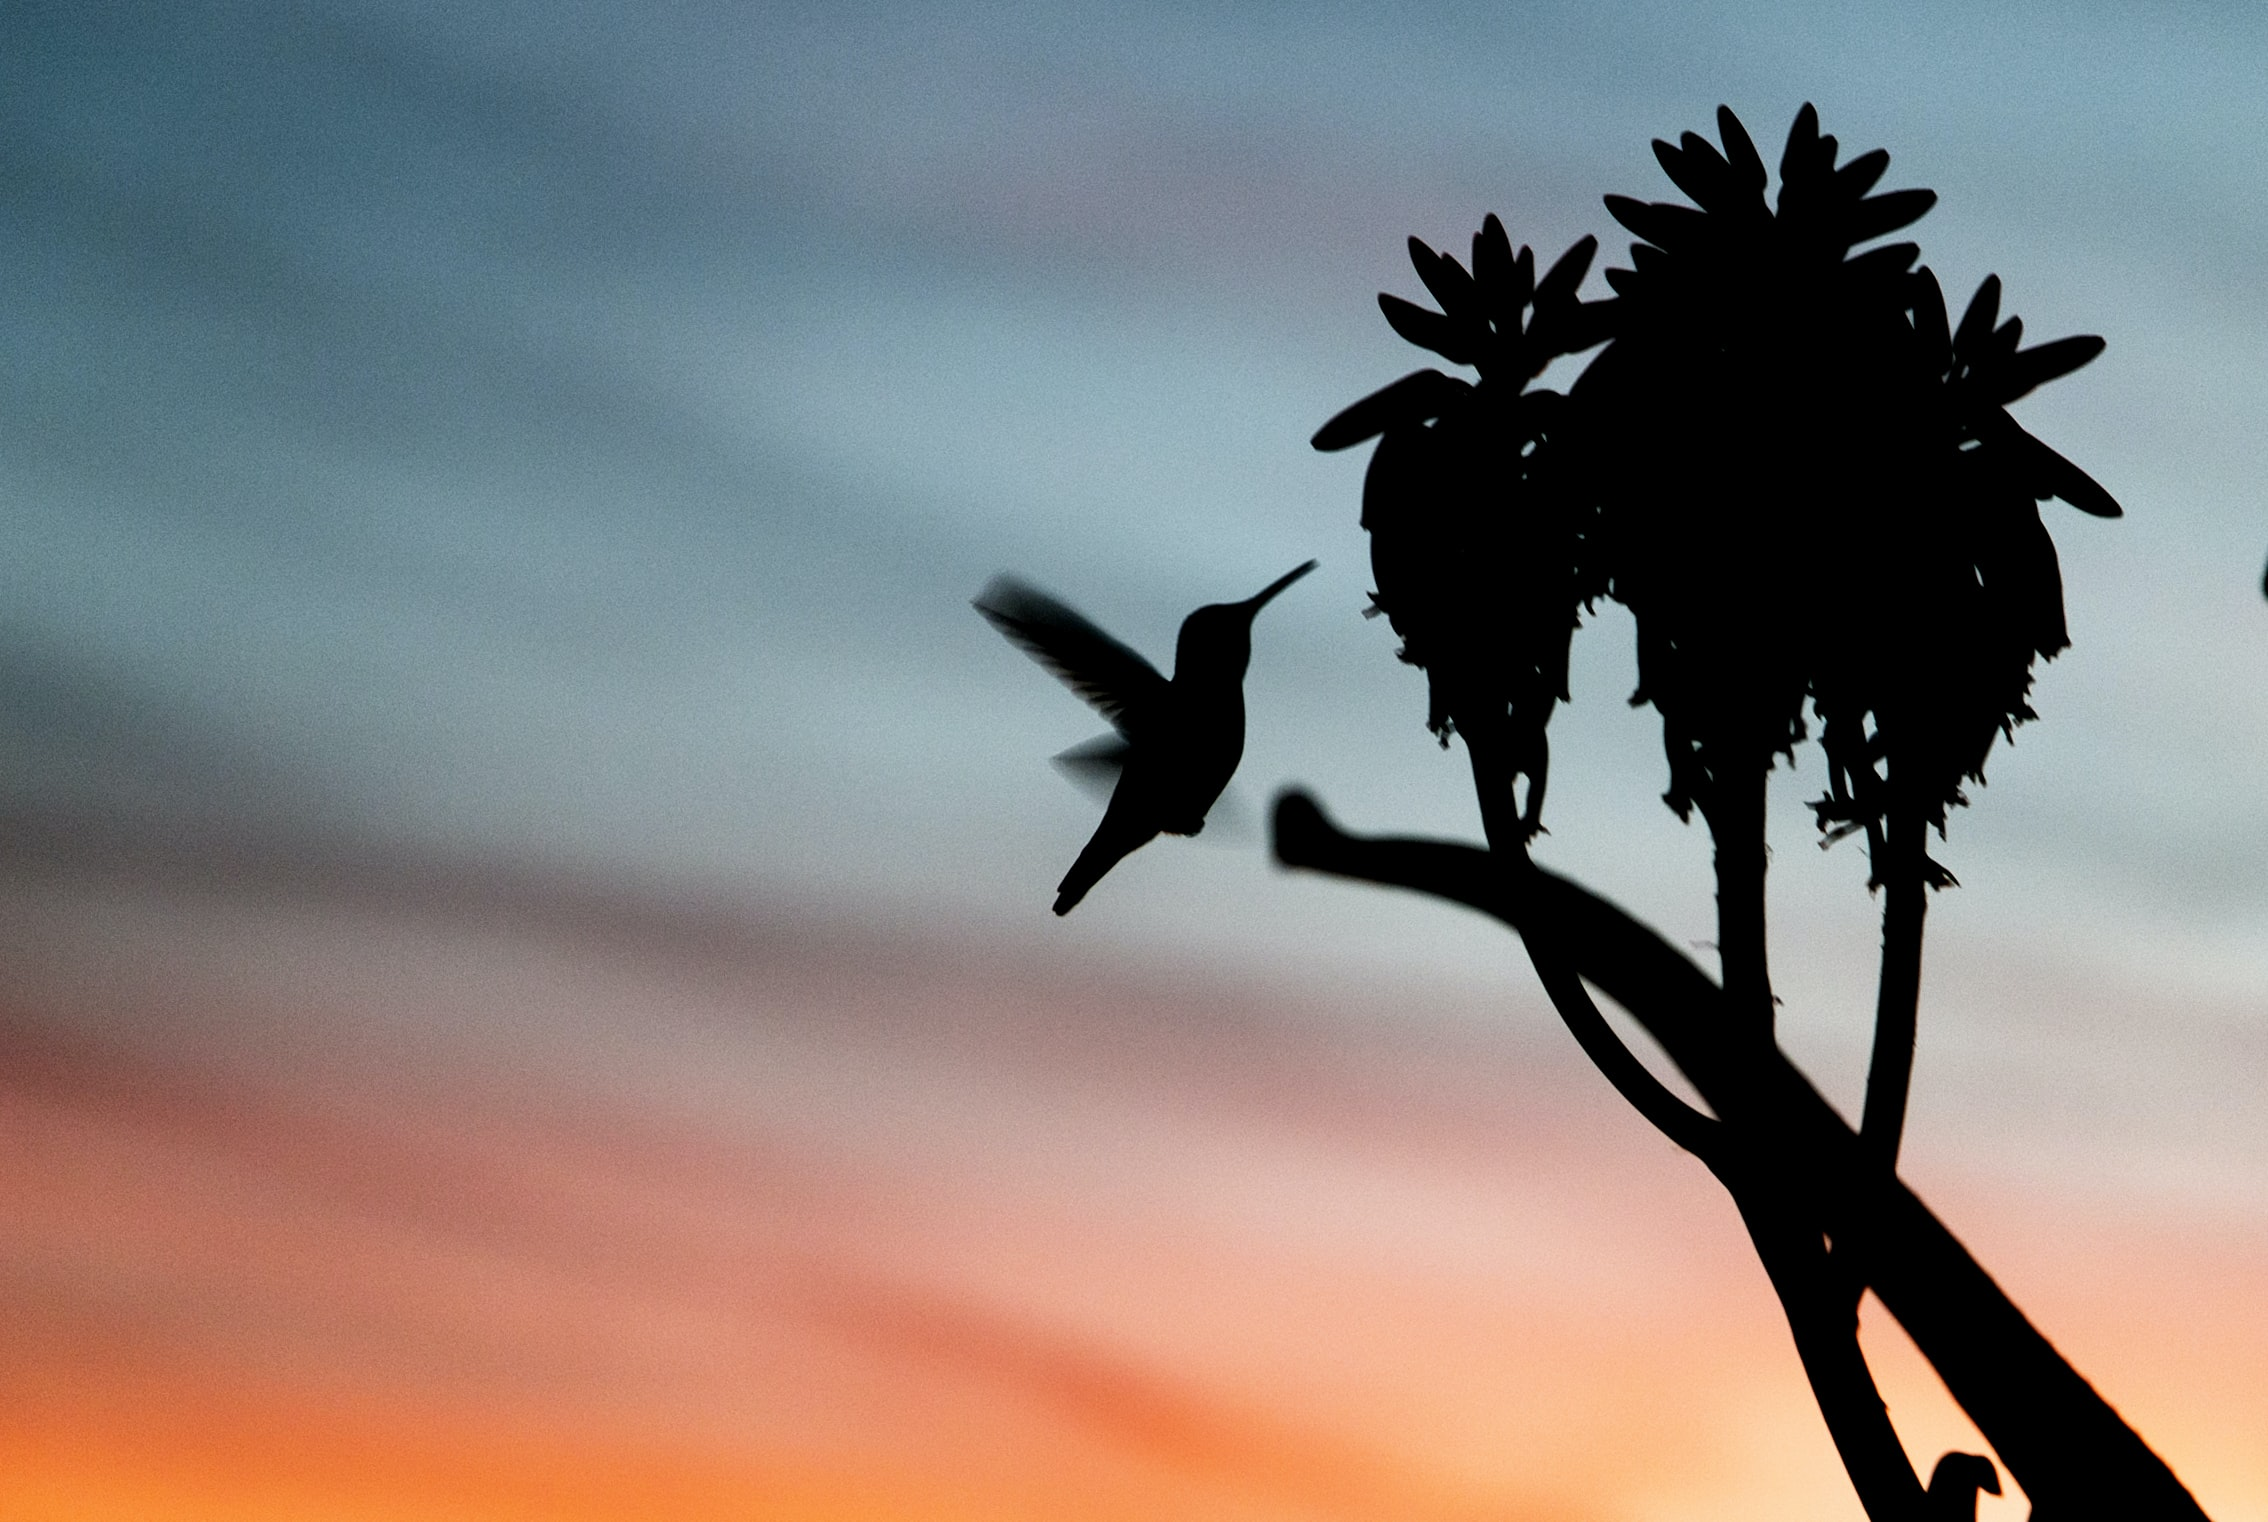 silhouette photo of hummingbird near branch